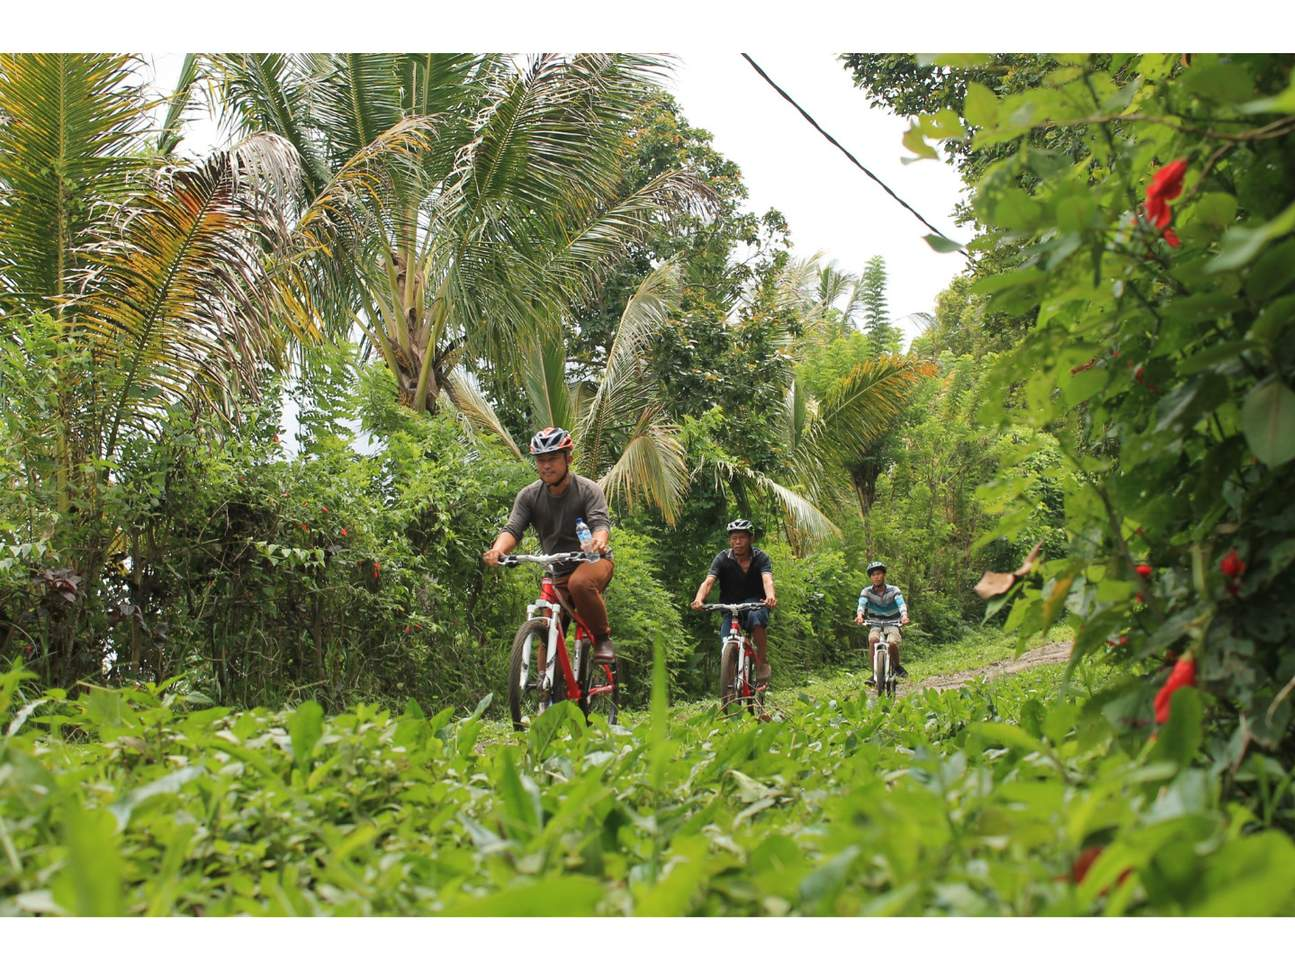 tourists cycling in bali's forest